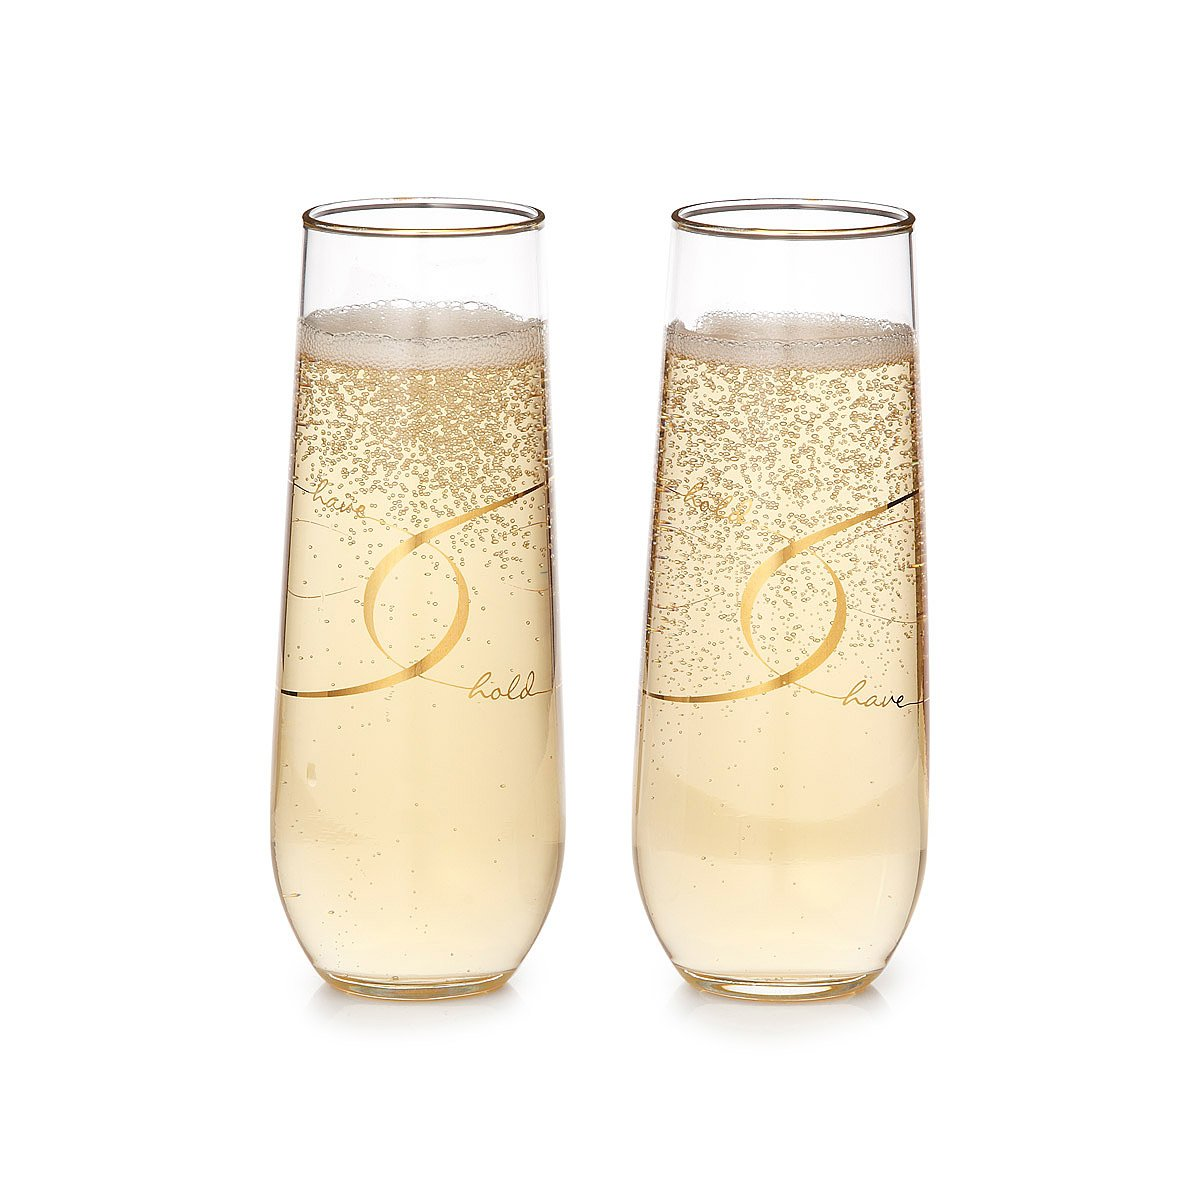 Have & Hold Stemless Champagne Flutes - Set of 2